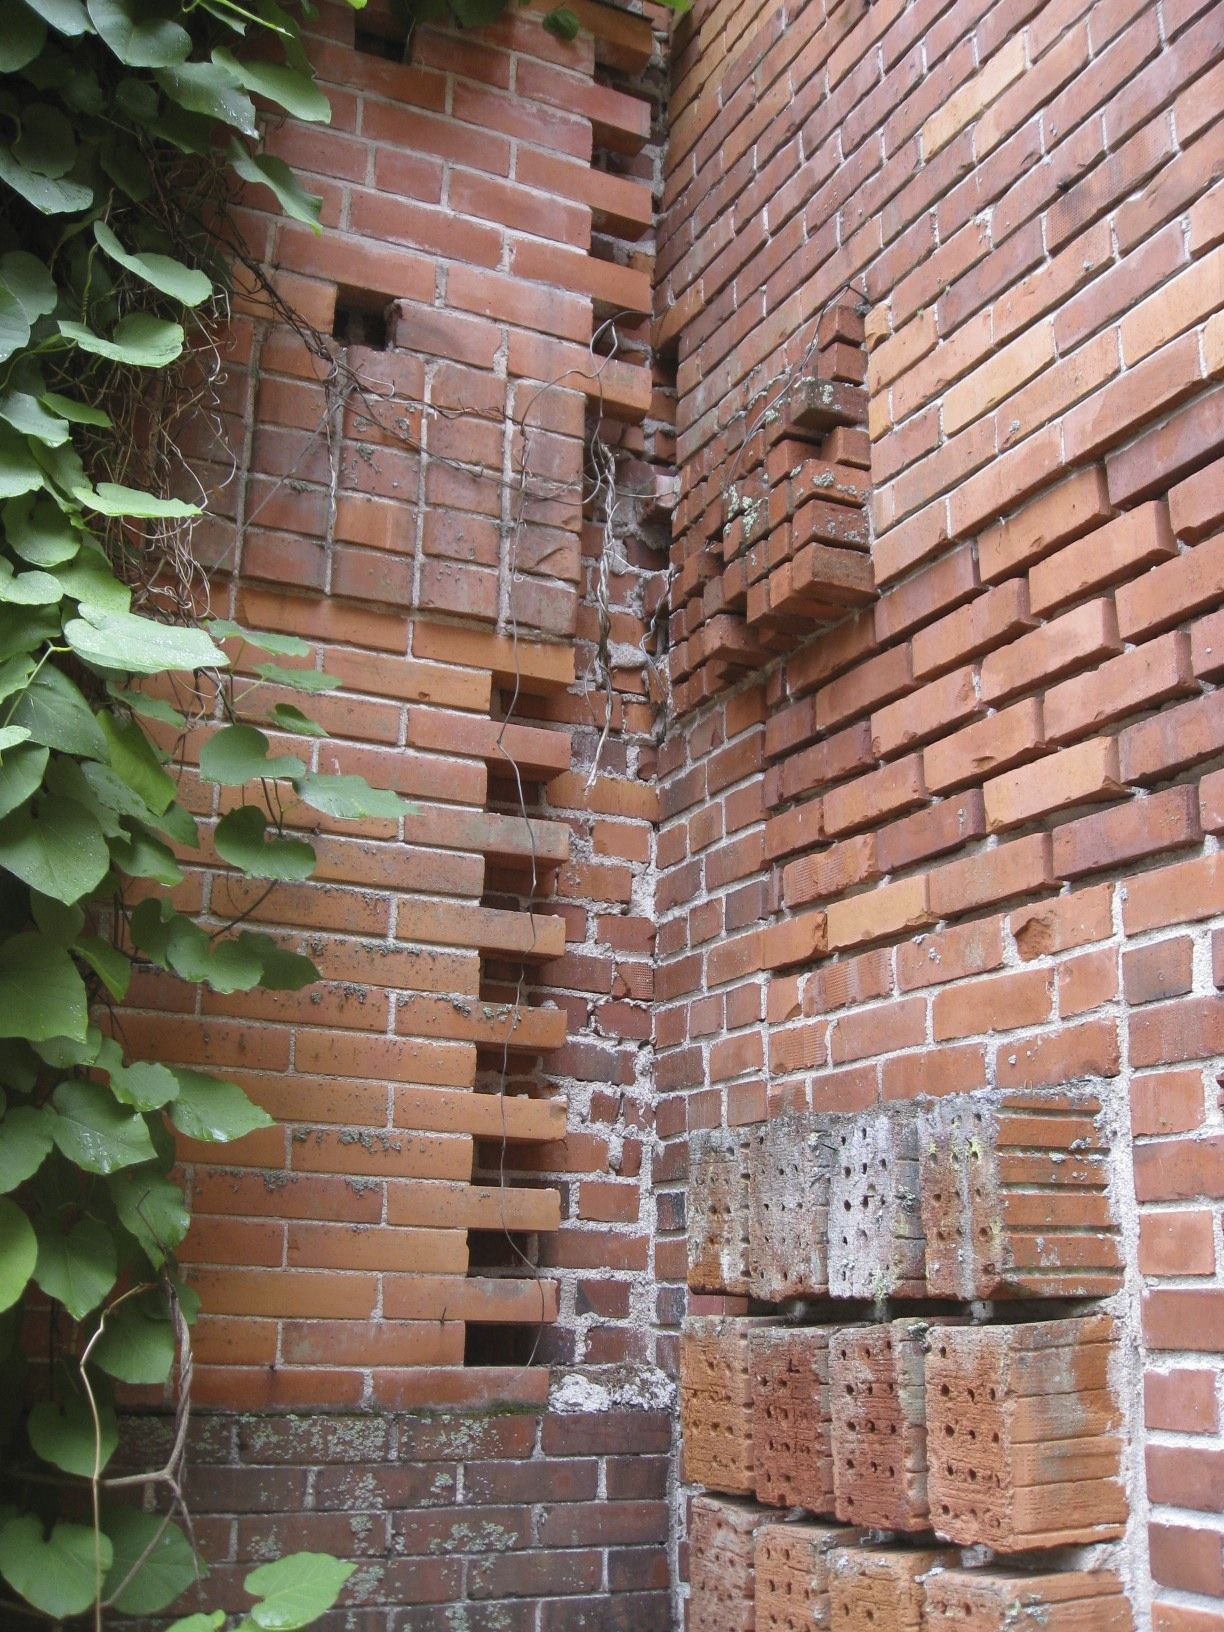 Alvar Aalto Experimented With Mixing Many Different Brick